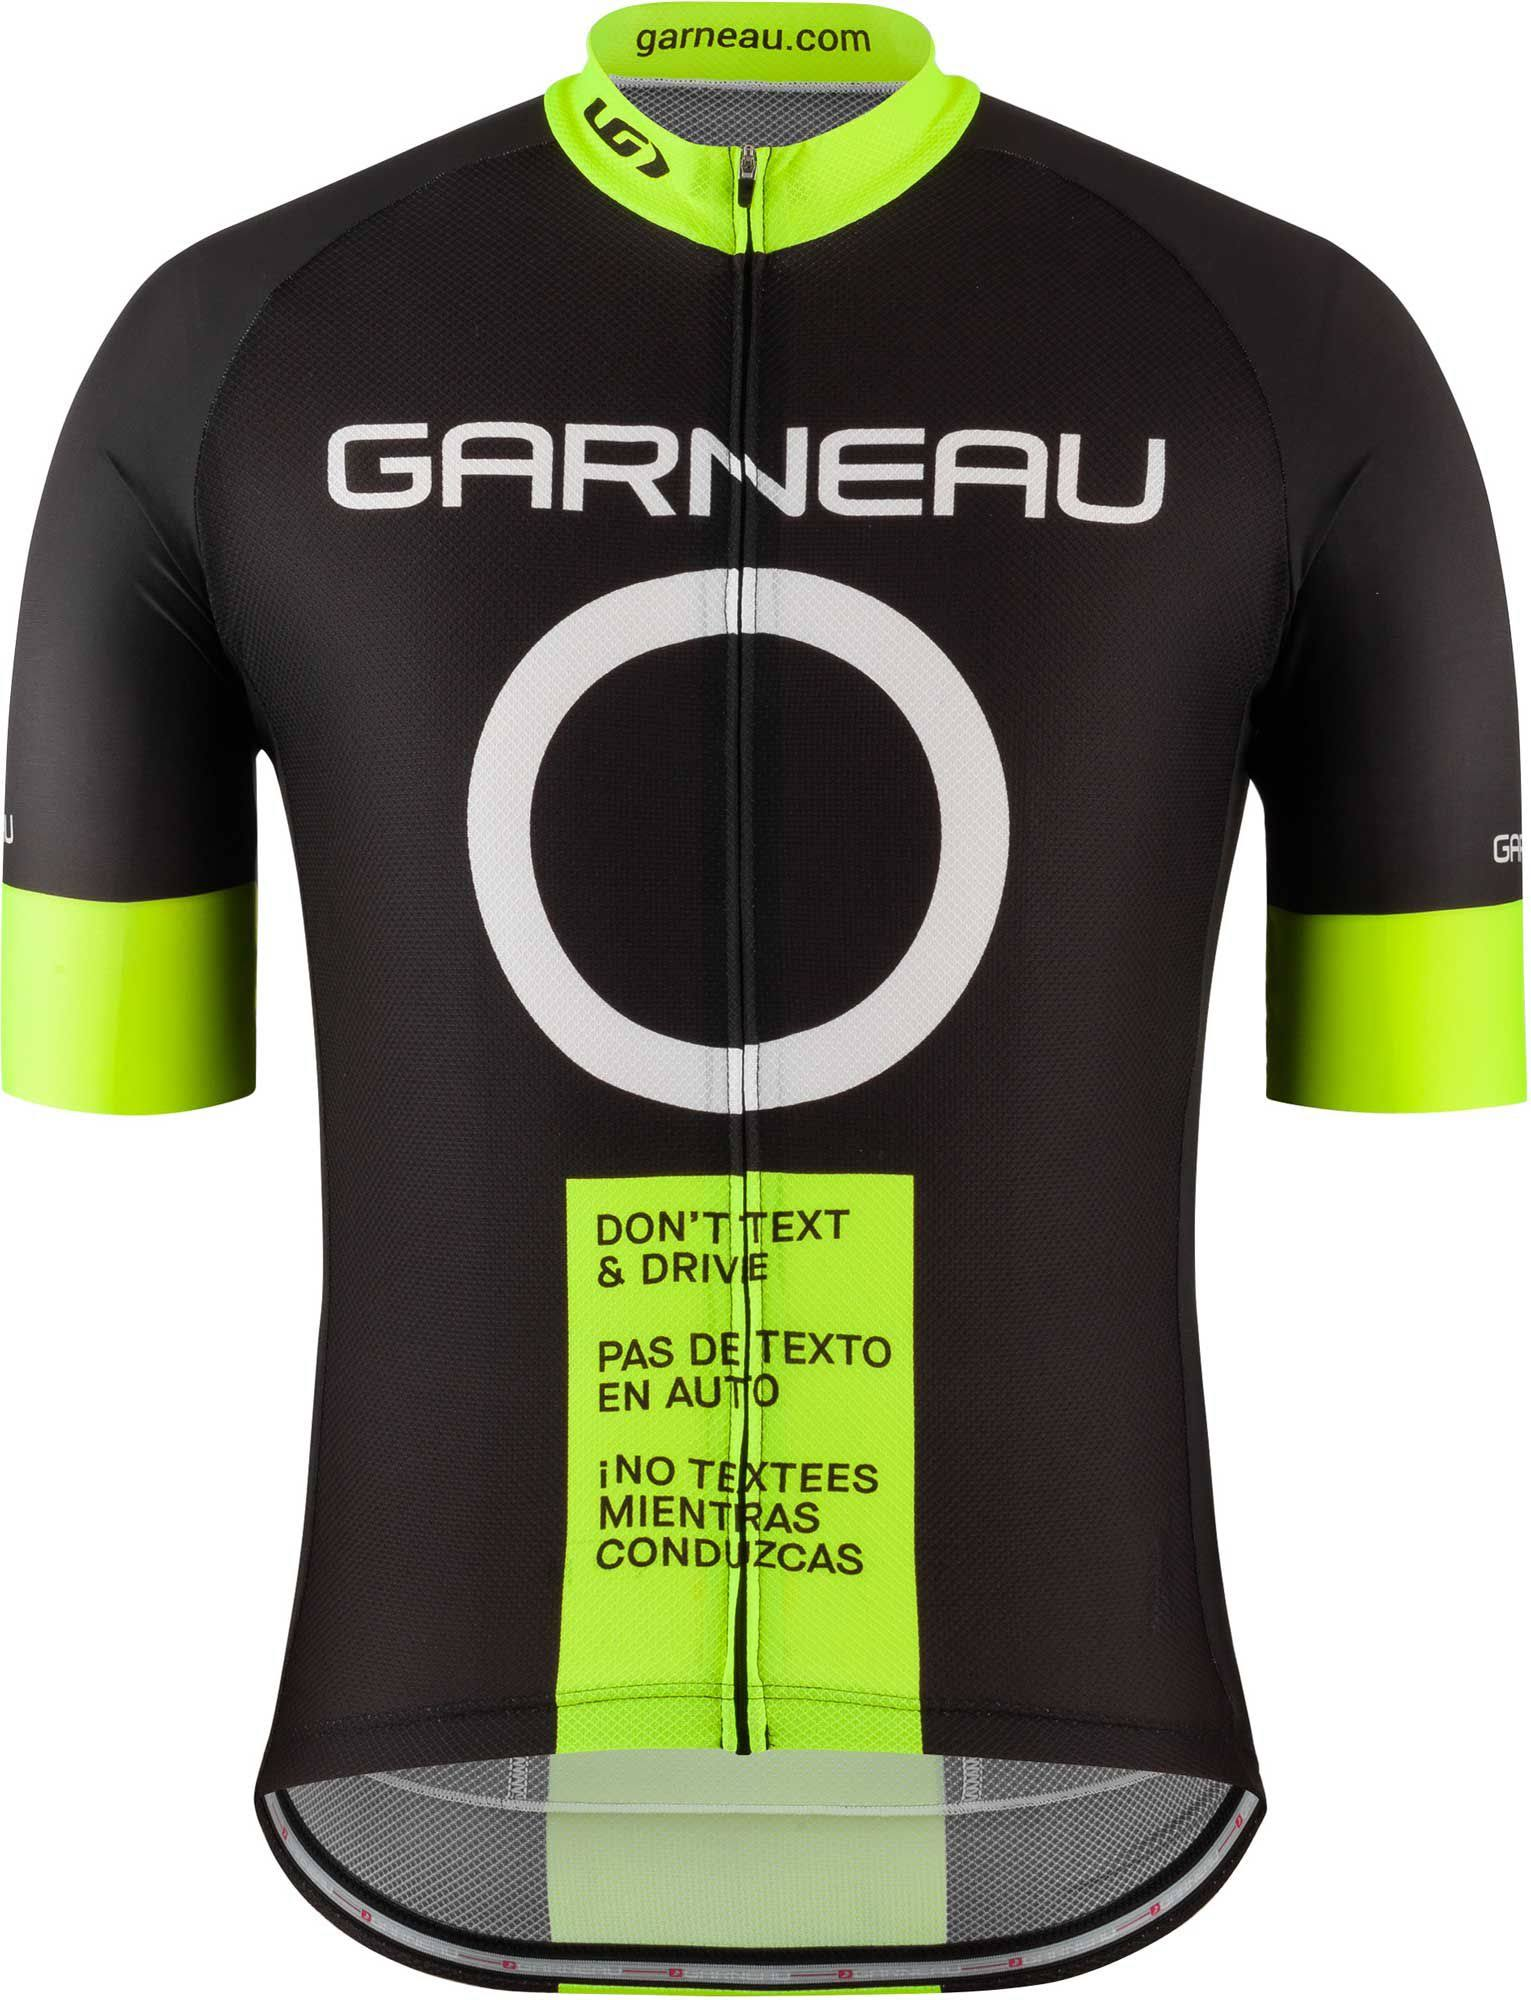 Louis Garneau Men's Don't Text and Drive Cycling Jersey, Size: XL, Black